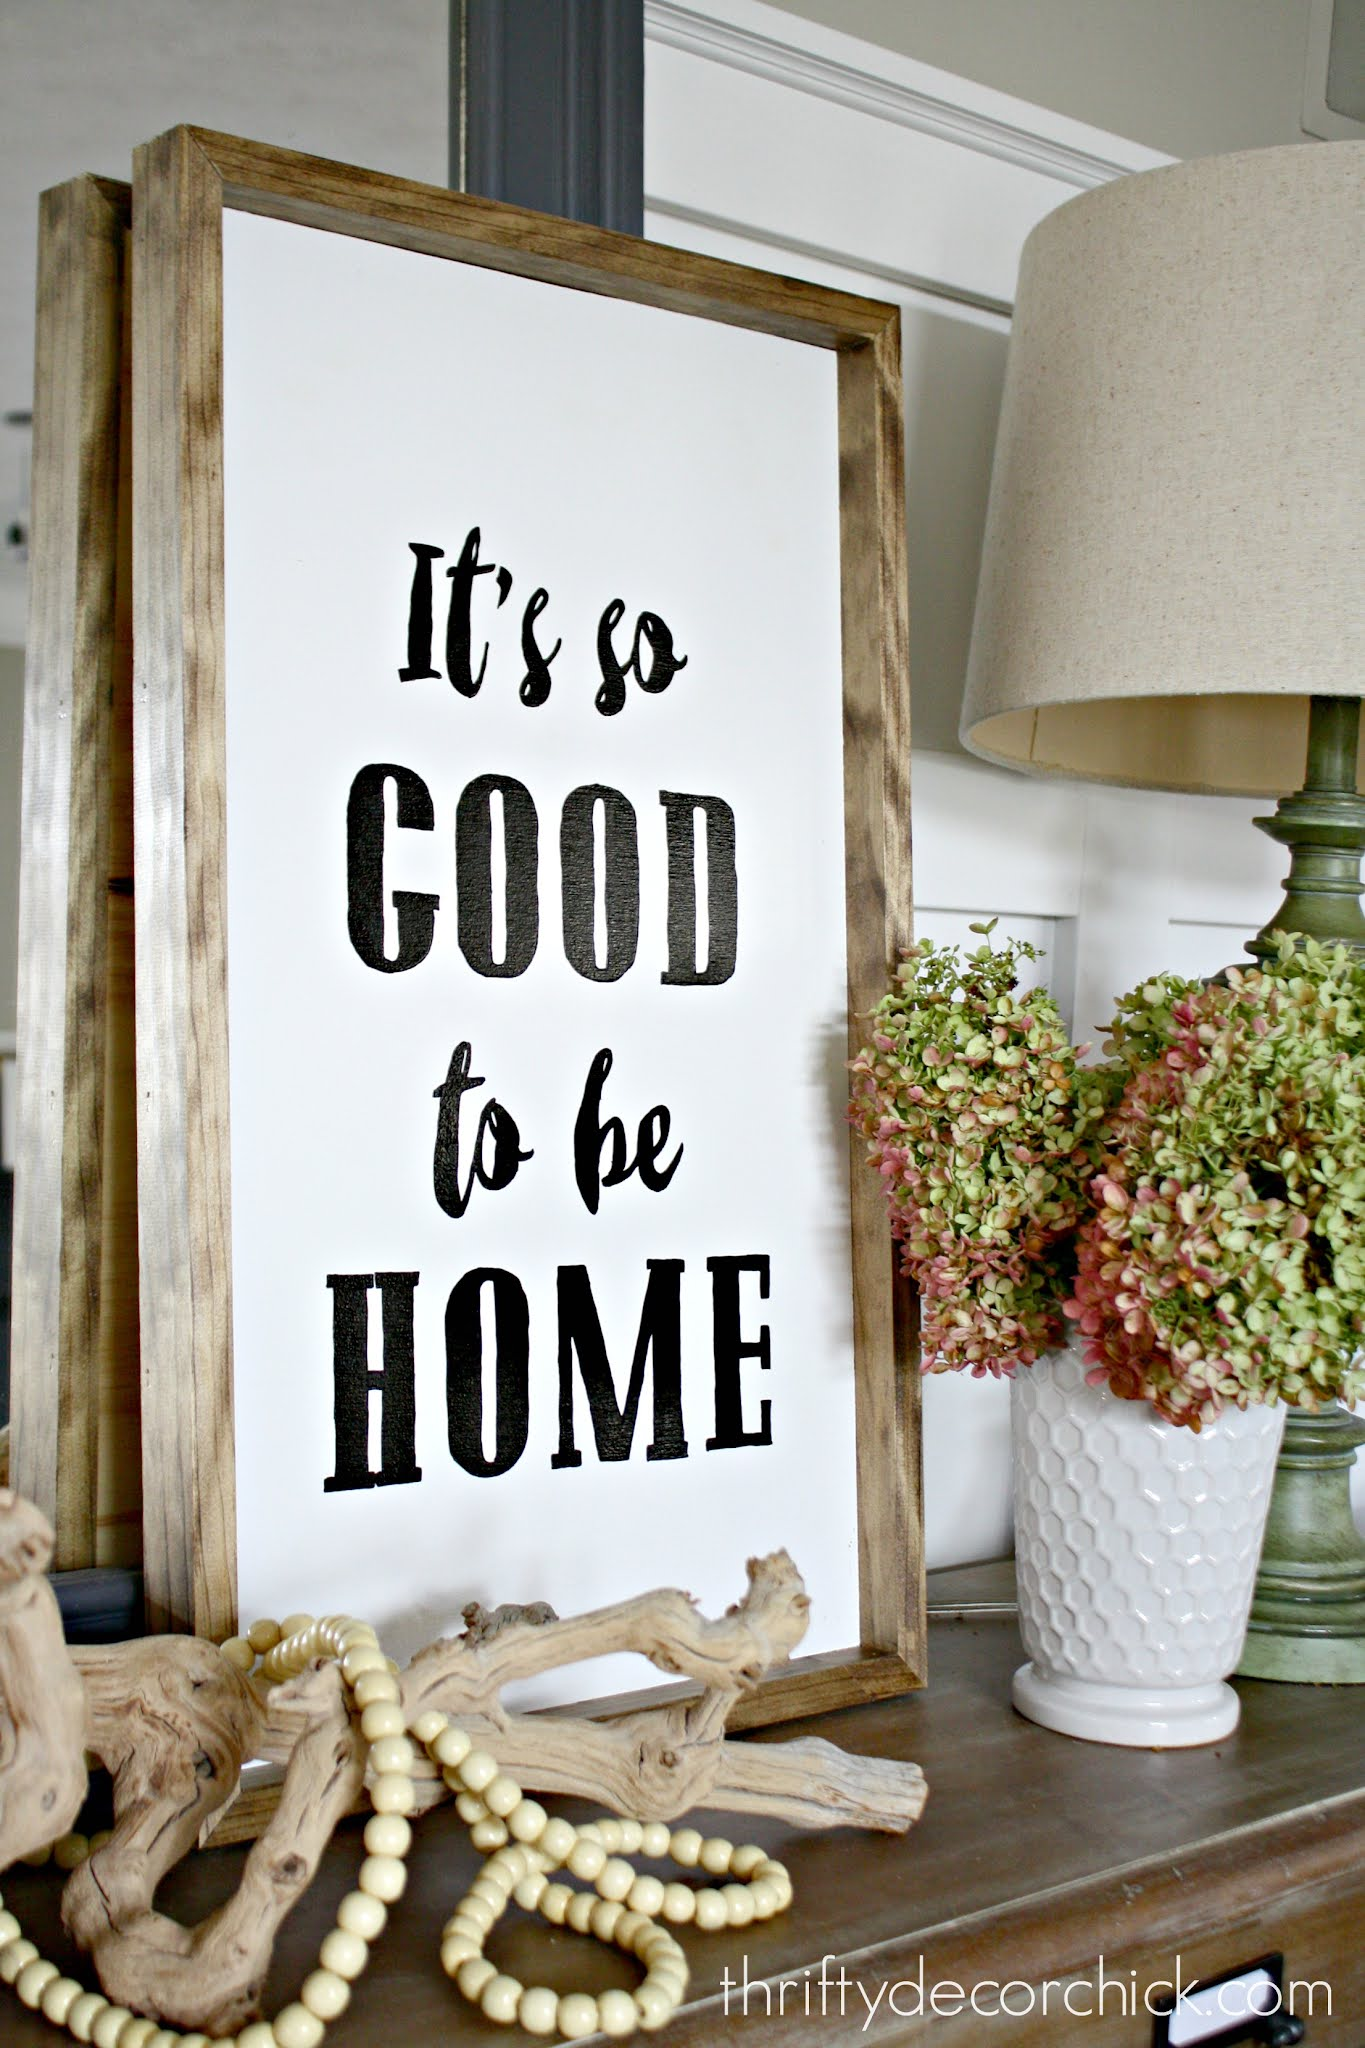 It's good to be home DIY art